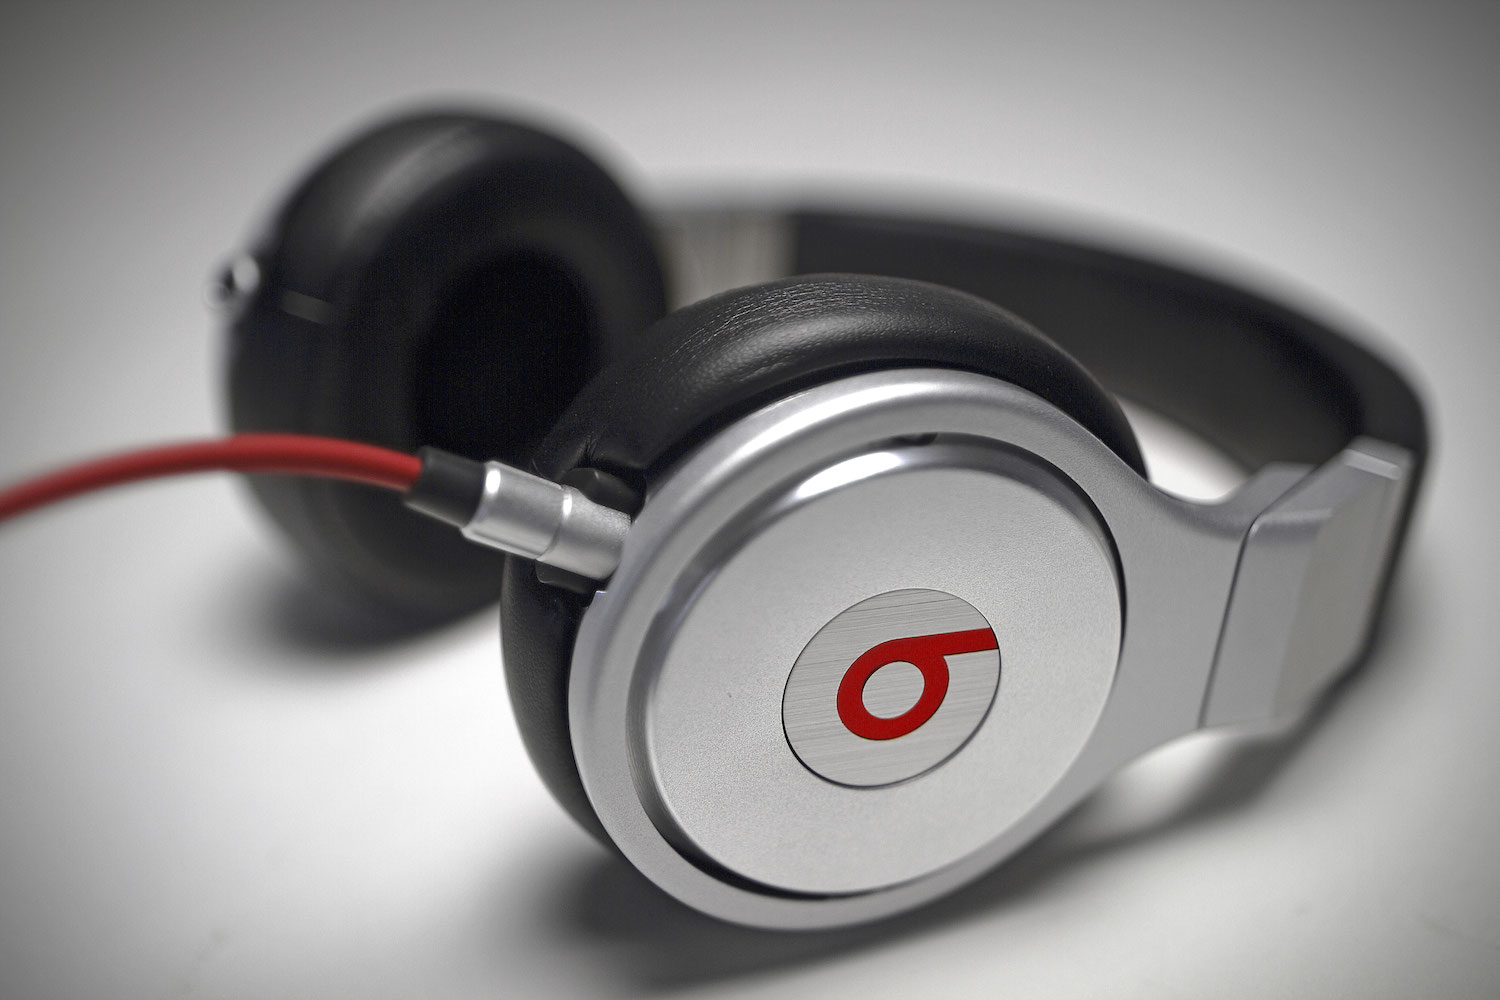 Apple Wants To Improve The Design Quality On Future Beats Headphones